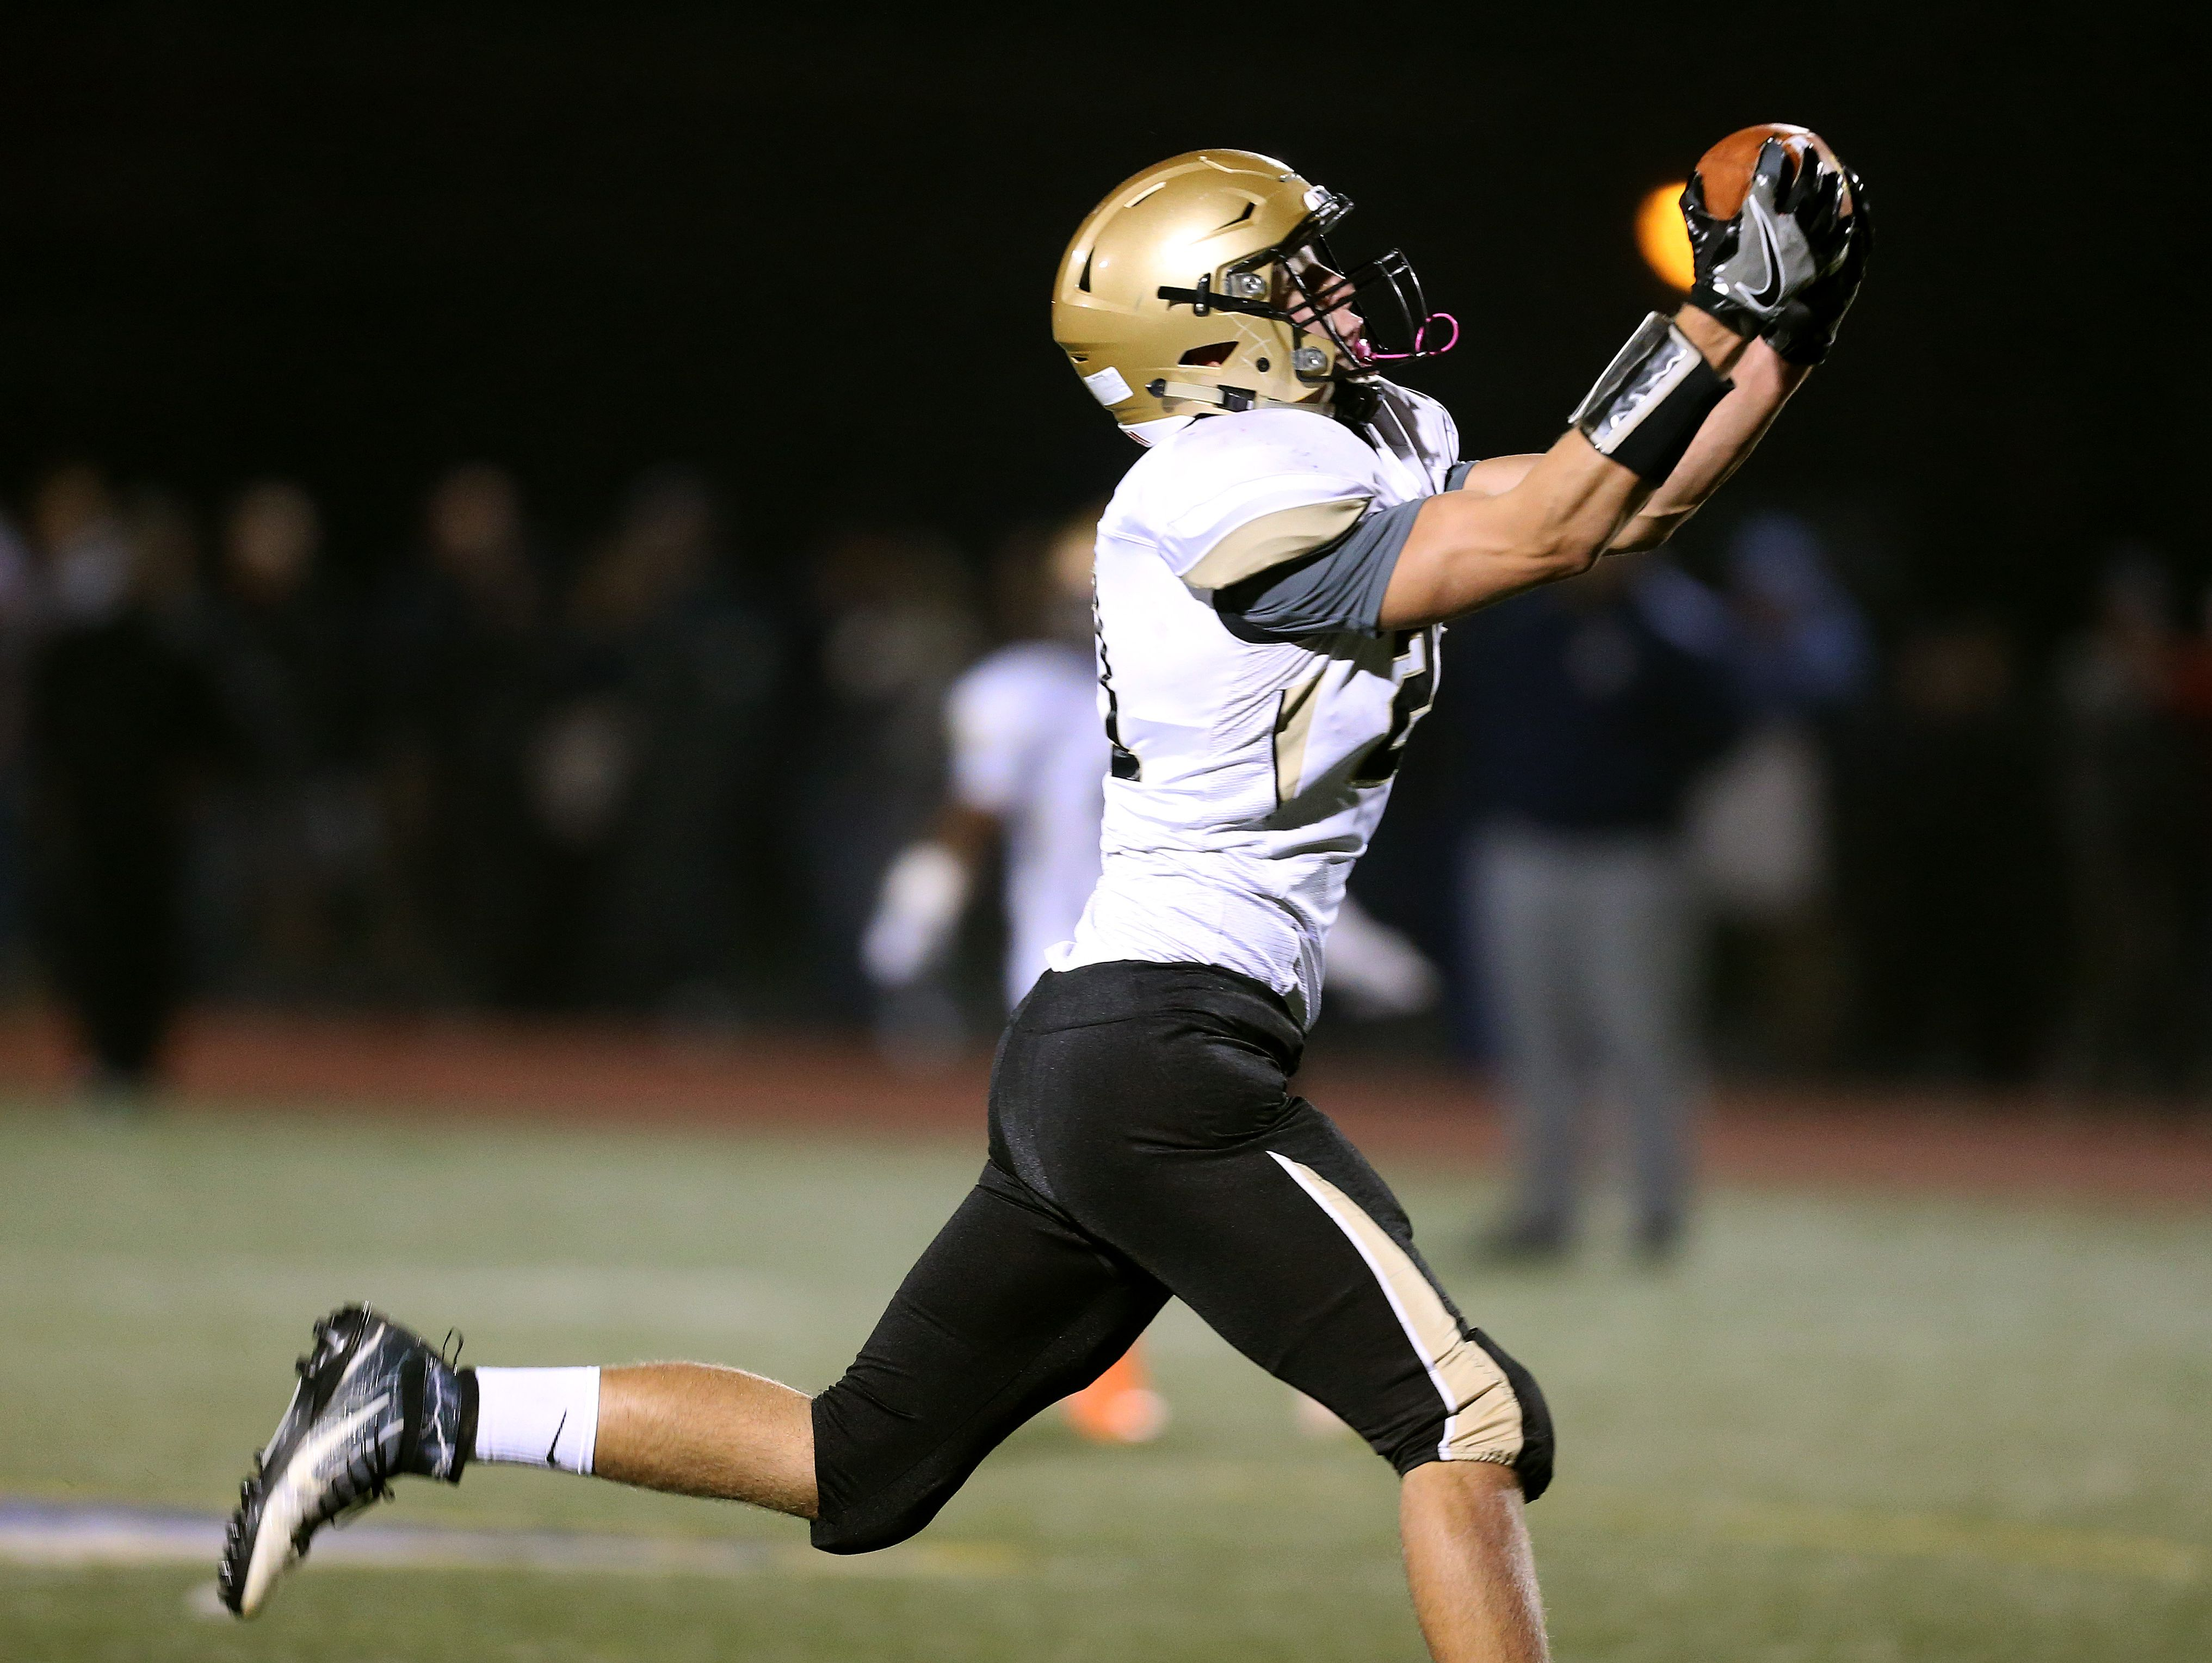 Greece Athena's Kyle Benham catches a deep pass for a touchdown against Brighton.